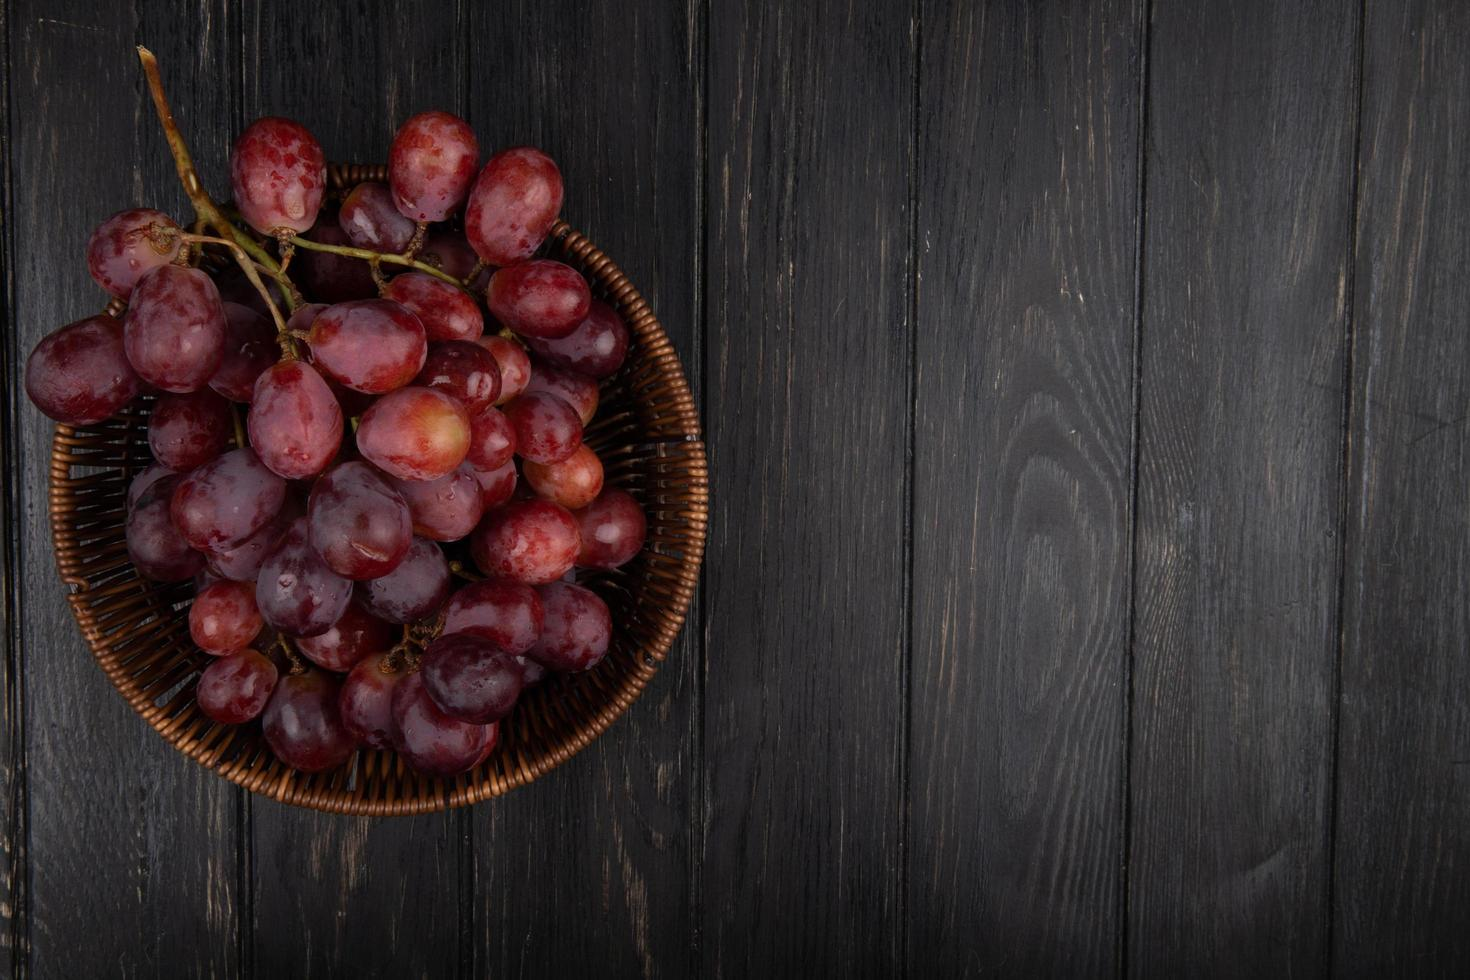 Top view of red grapes in a wicker basket on dark wooden background photo